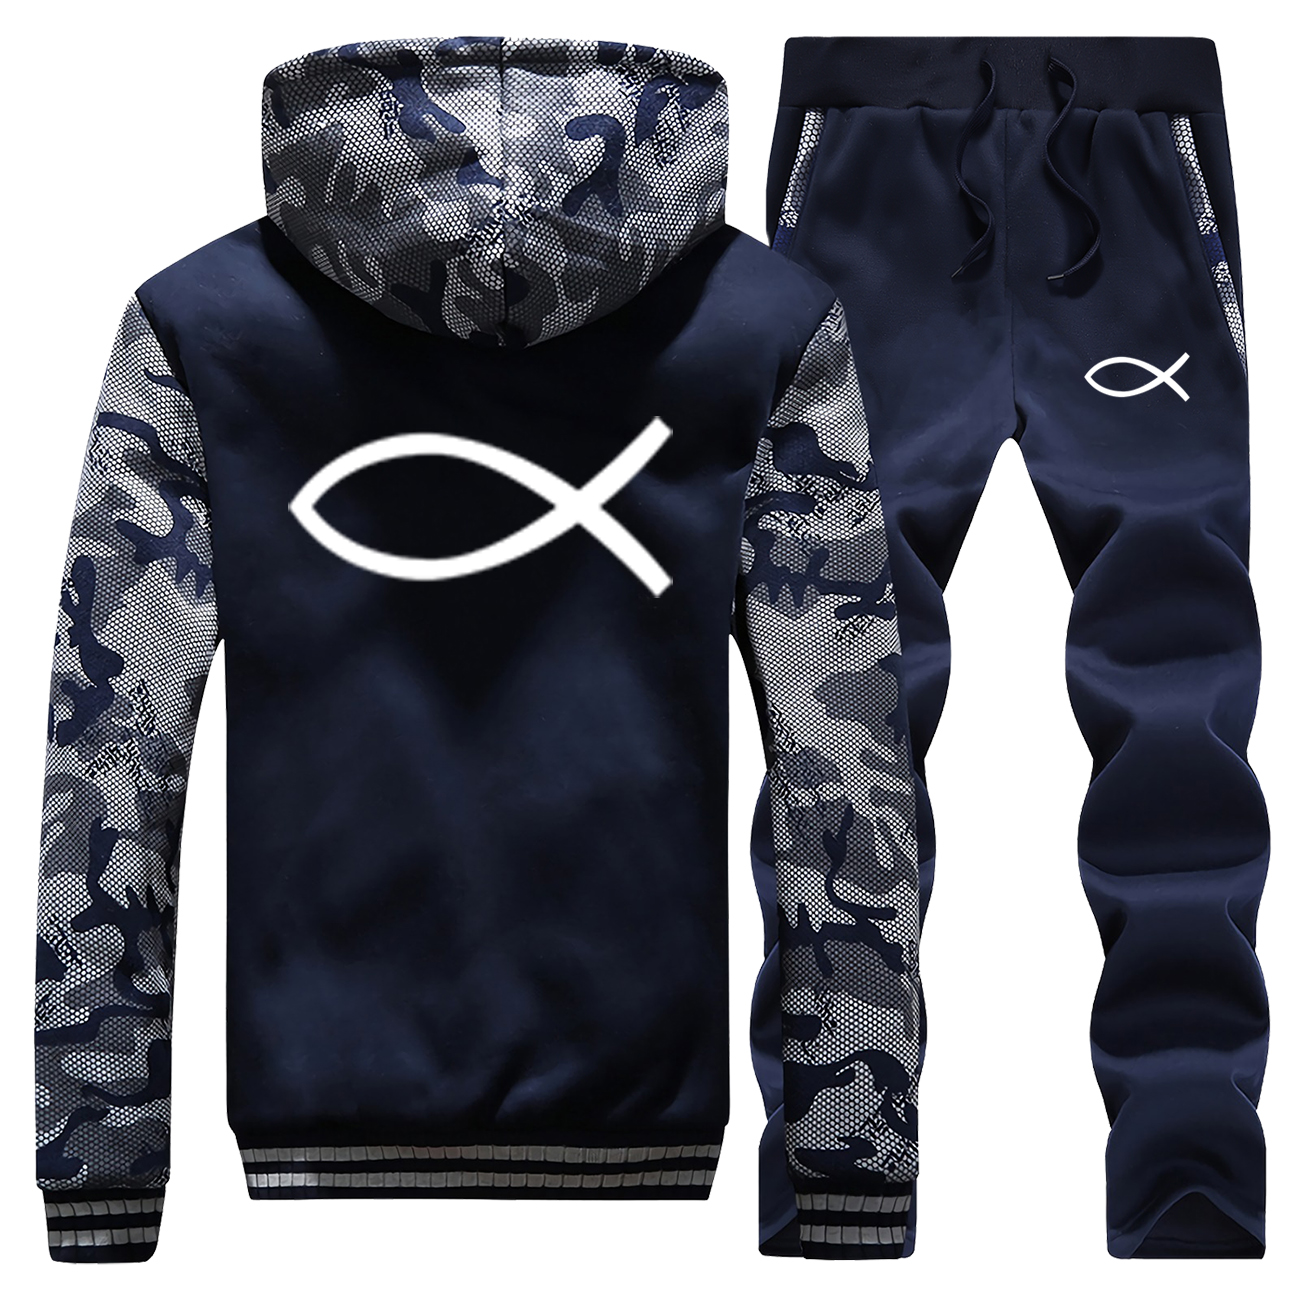 Christian JESUS Fish Hoodies Trousers Warm Fleece Zip Jacket+Pants 2 Piece Sets Fashion Brand Coat Winter Mens Tracksuit Suit